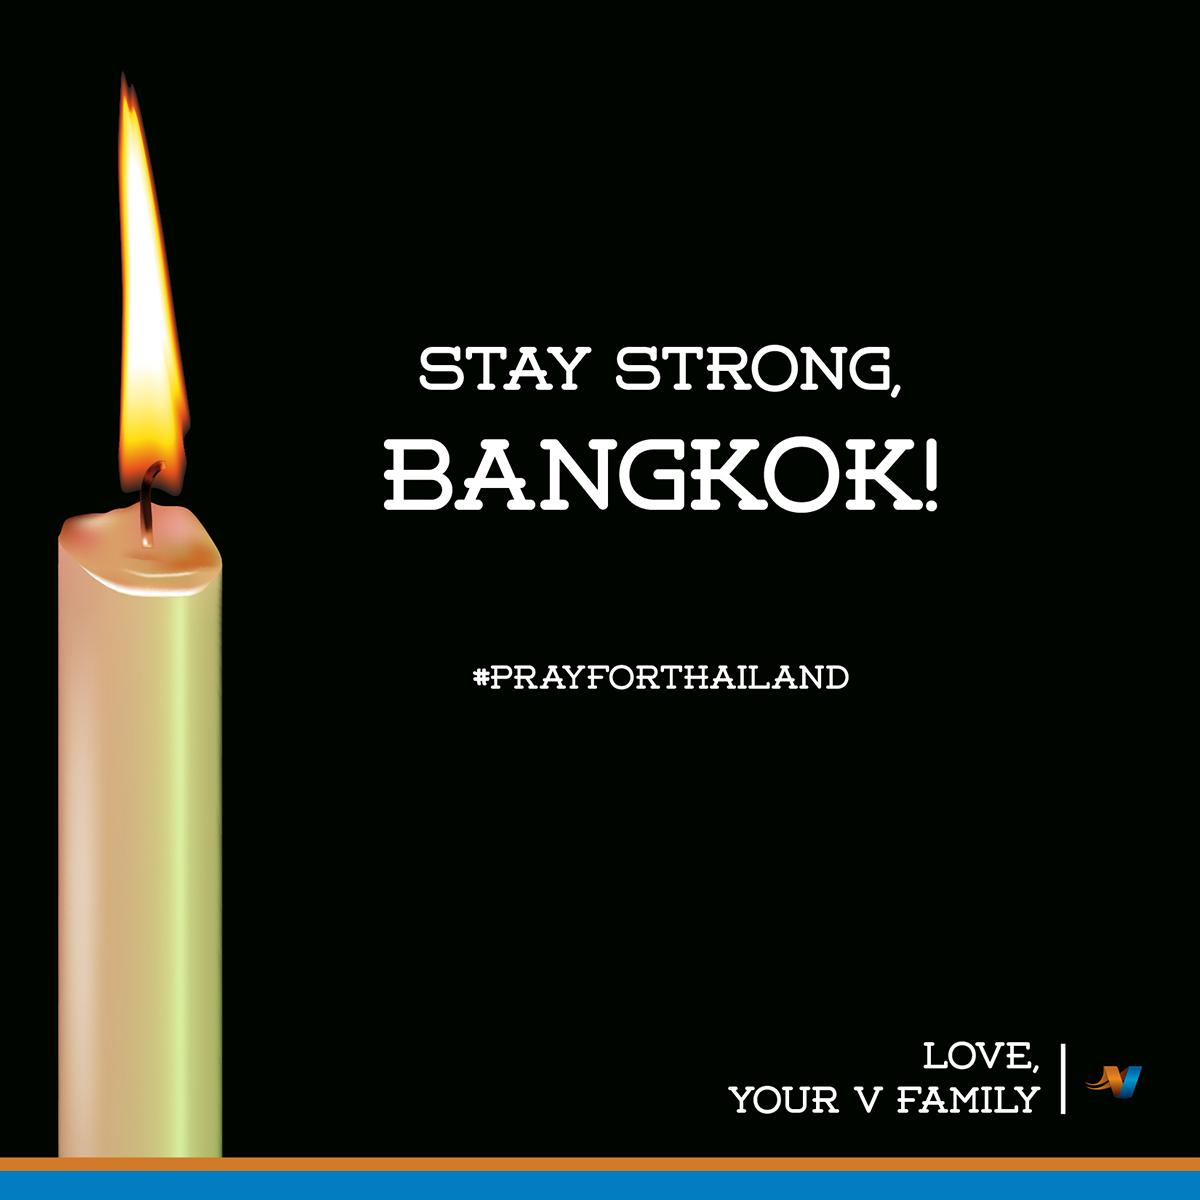 To our dear V Family in Thailand! #StrongerTogether #PrayForBangkok #PrayForThailand http://t.co/OsXzB1inyC